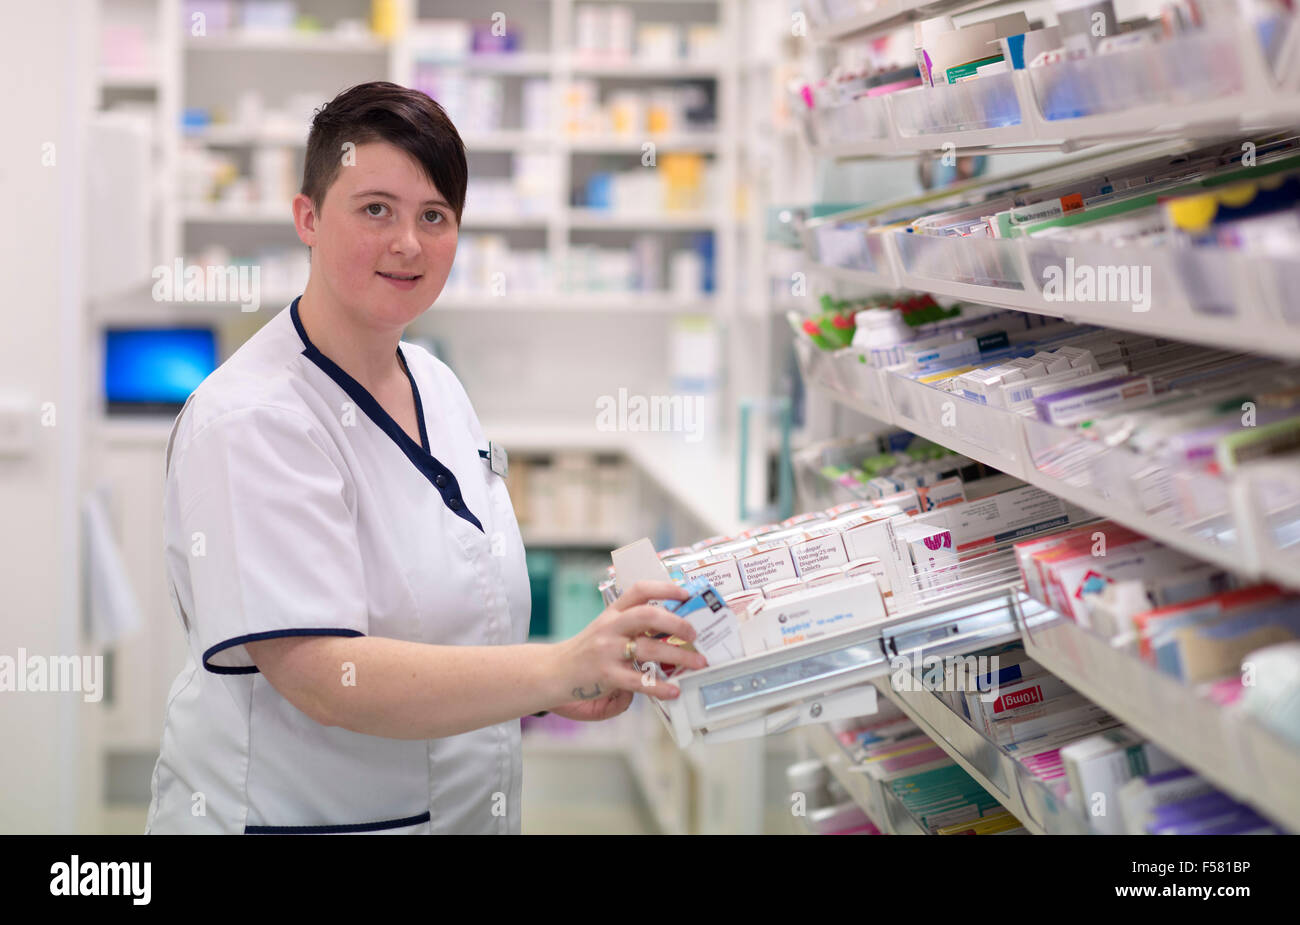 A female pharmacist at work in a chemist / pharmacy in South Wales, UK. - Stock Image